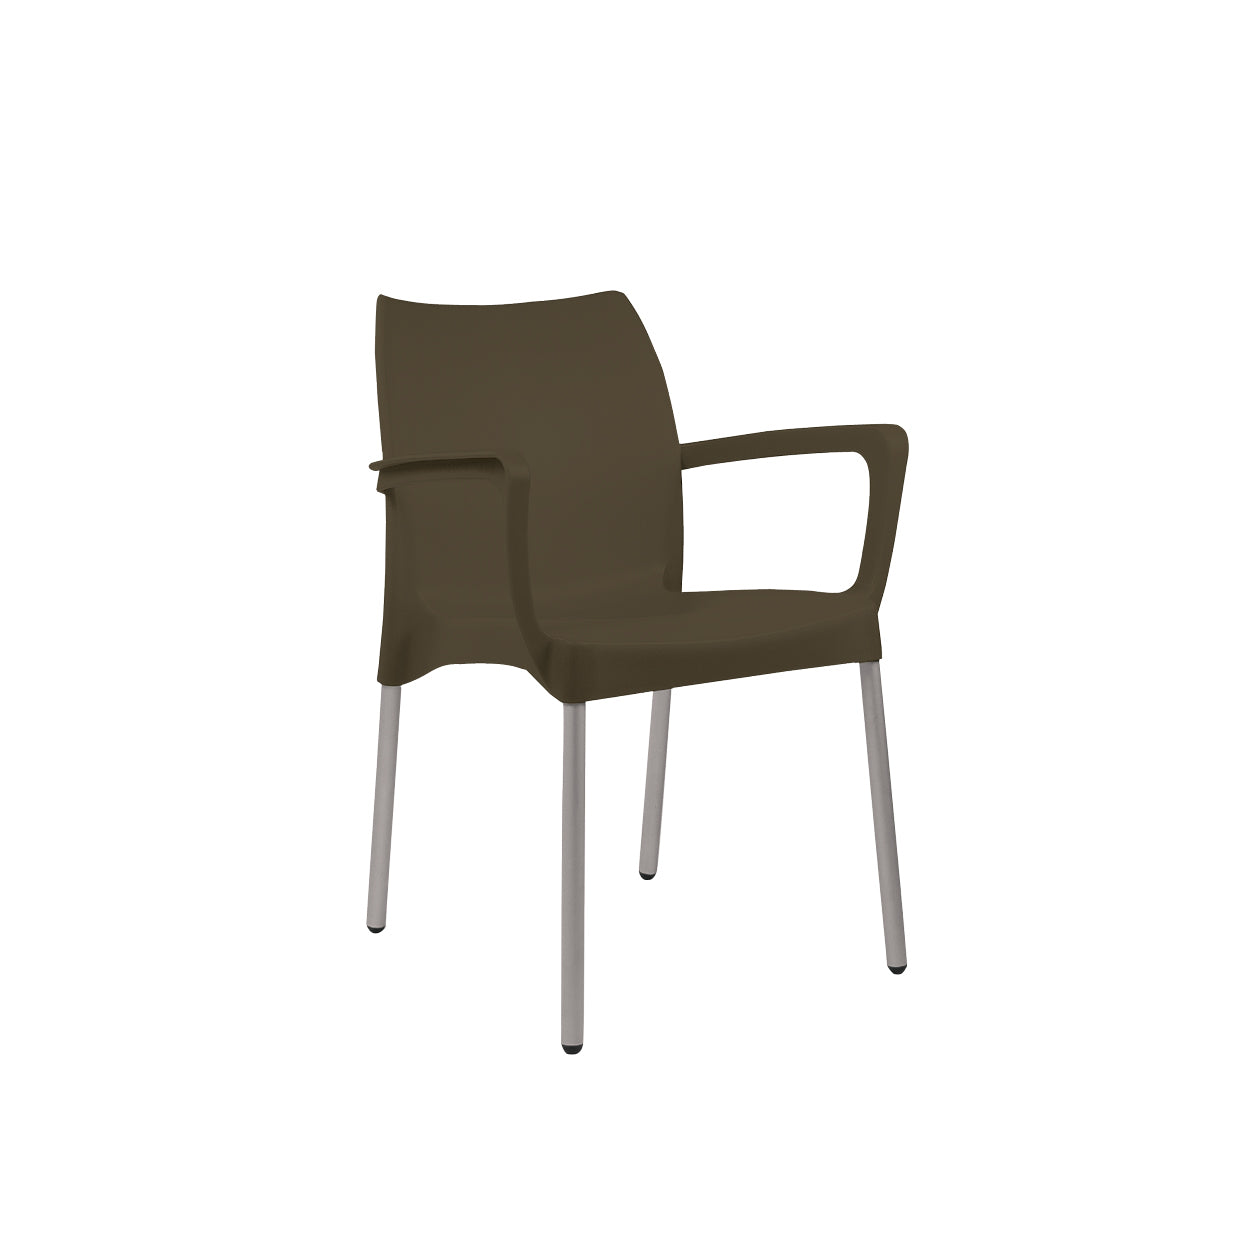 Hedcor Sage chair